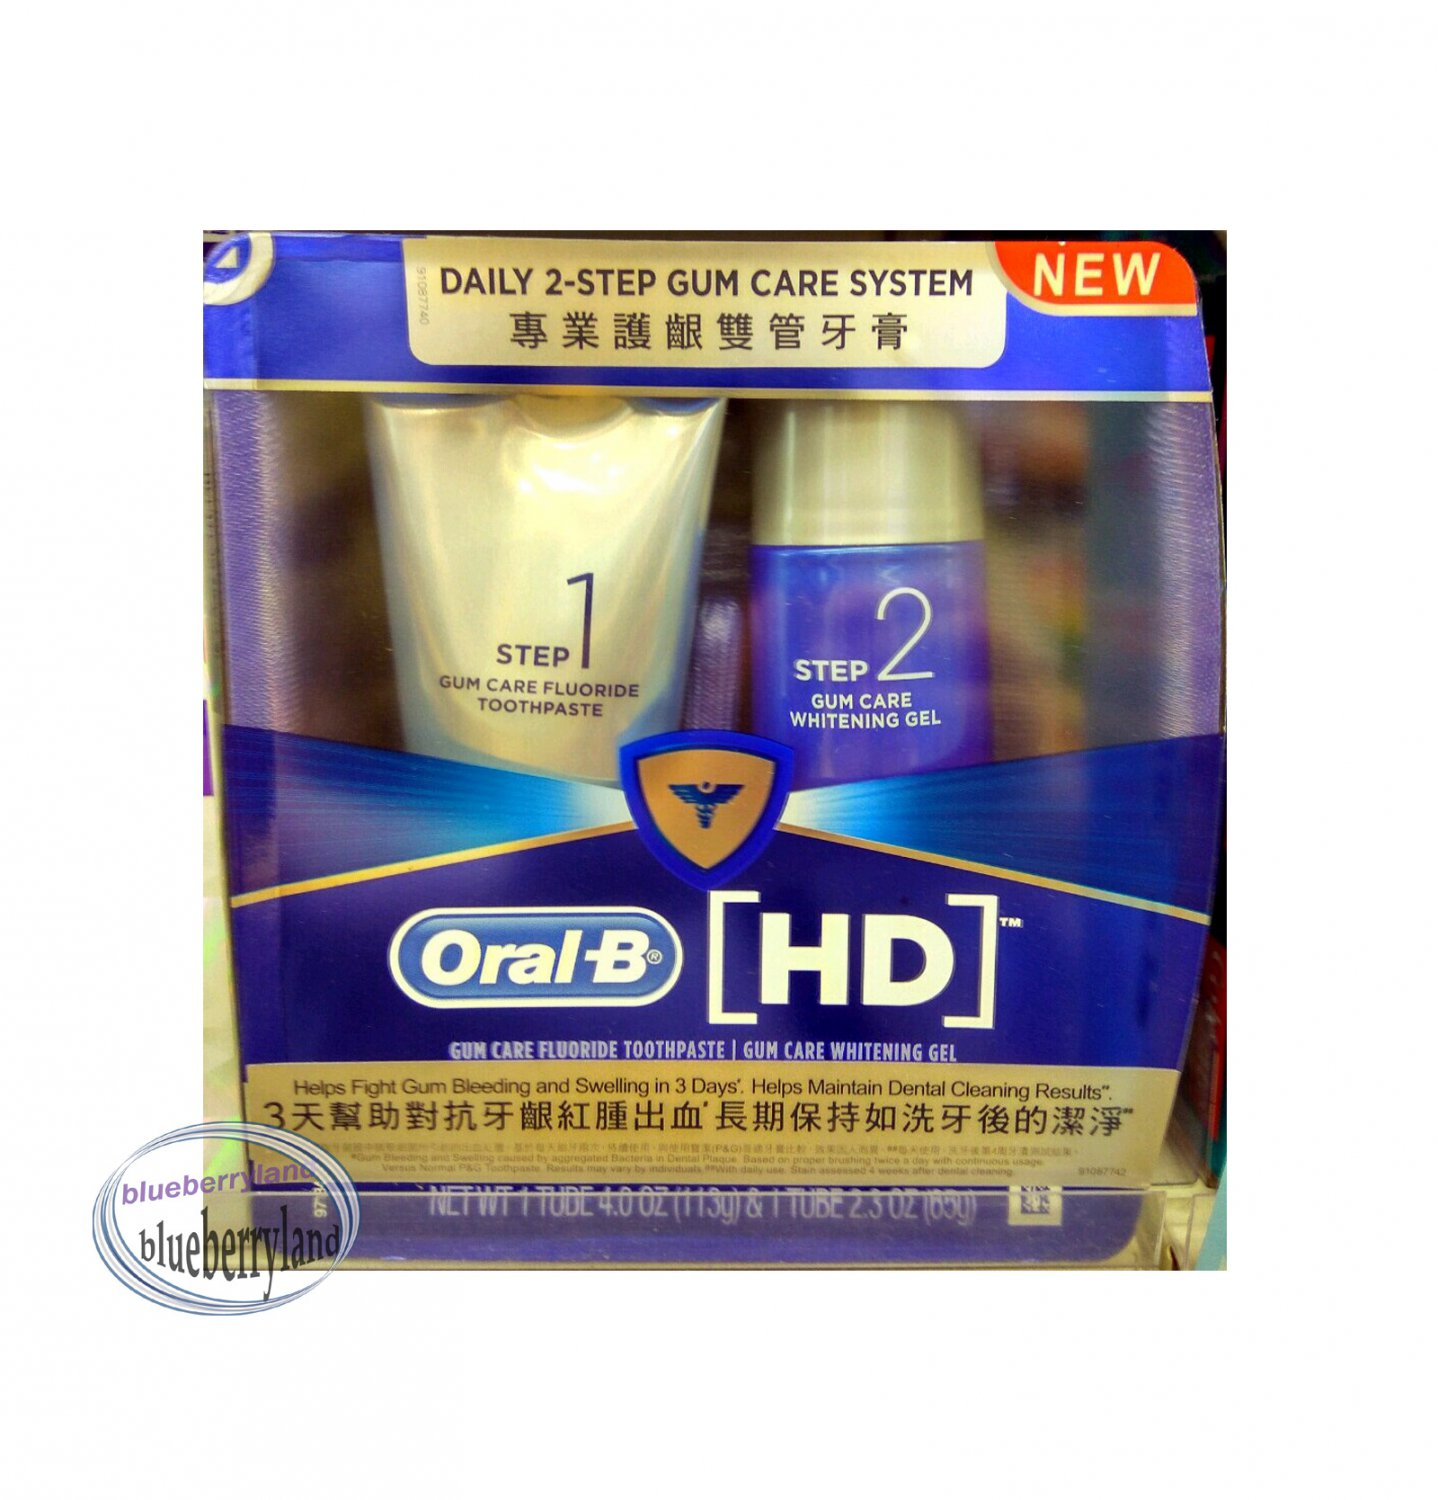 Oral-B HD Daily 2-Step Gum Care System Fluoride Toothpaste & Whitening Gel oral care